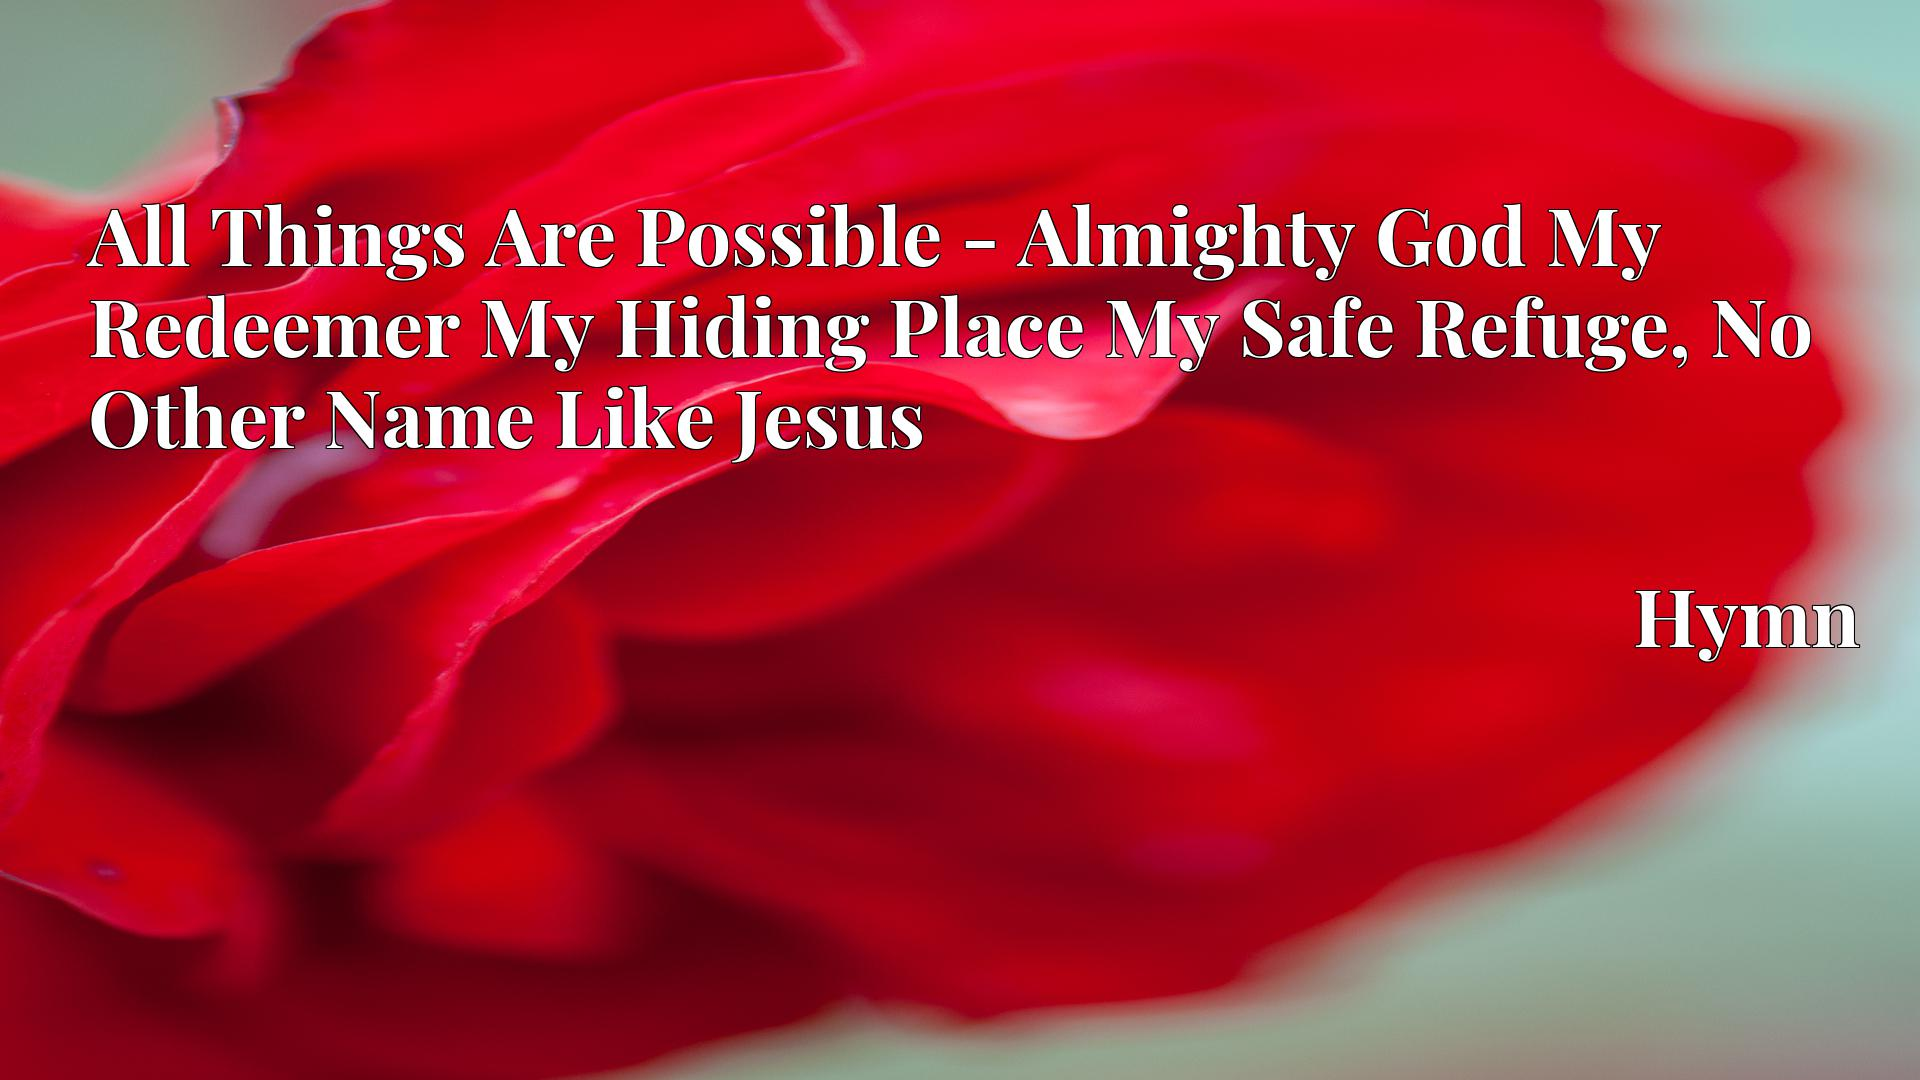 All Things Are Possible - Almighty God My Redeemer My Hiding Place My Safe Refuge, No Other Name Like Jesus - Hymn